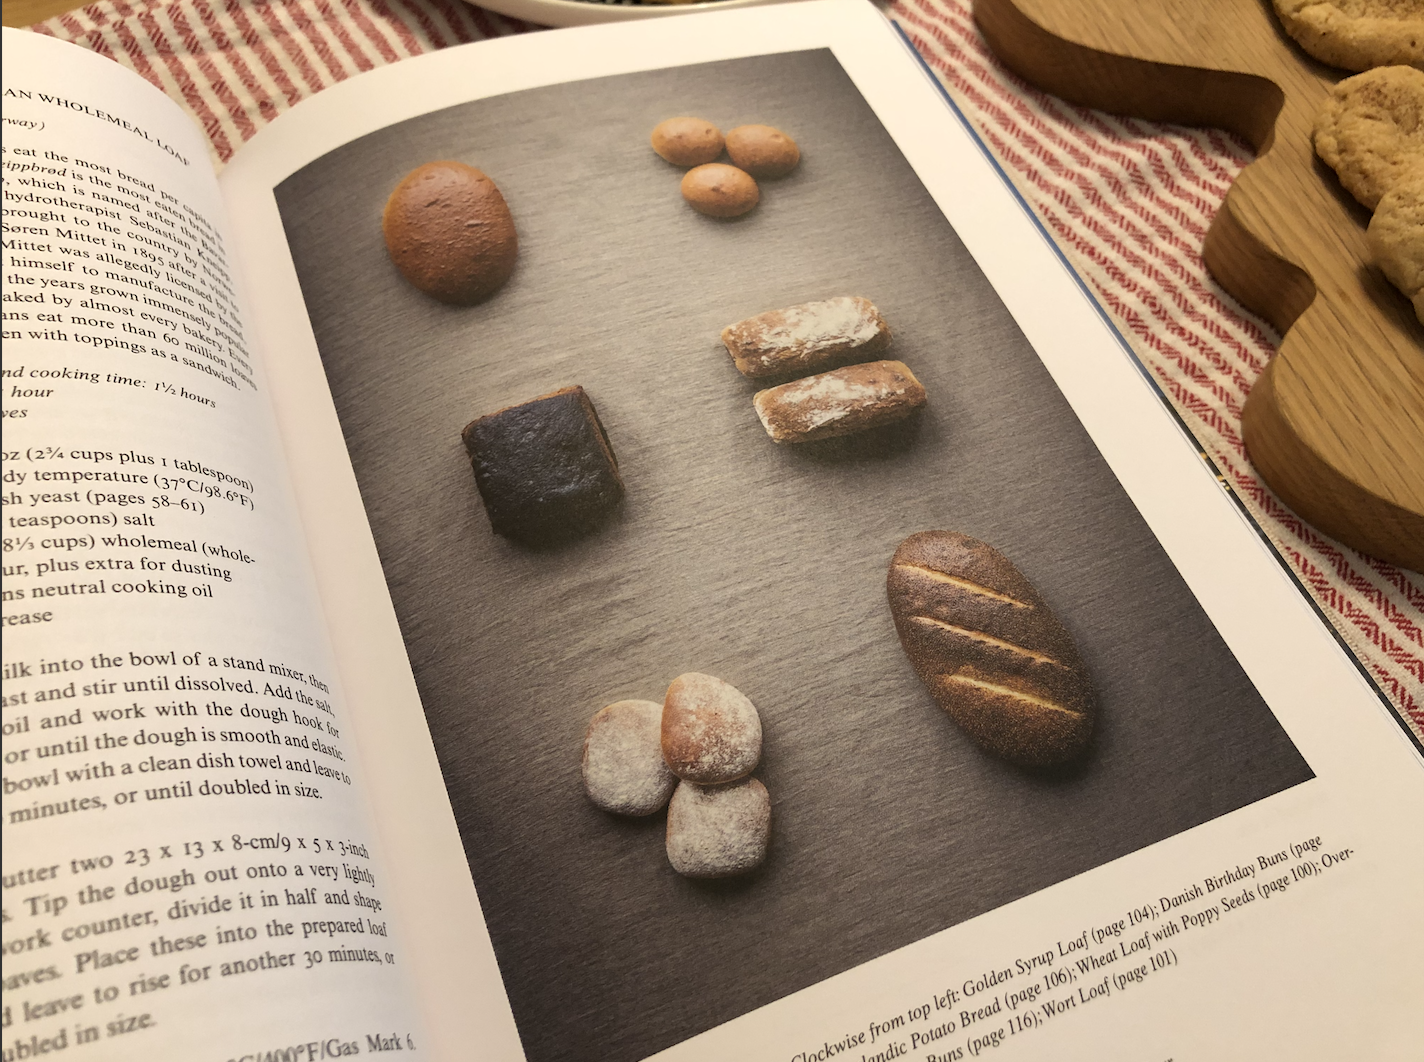 Magnus Nilsson The Nordic Baking Book